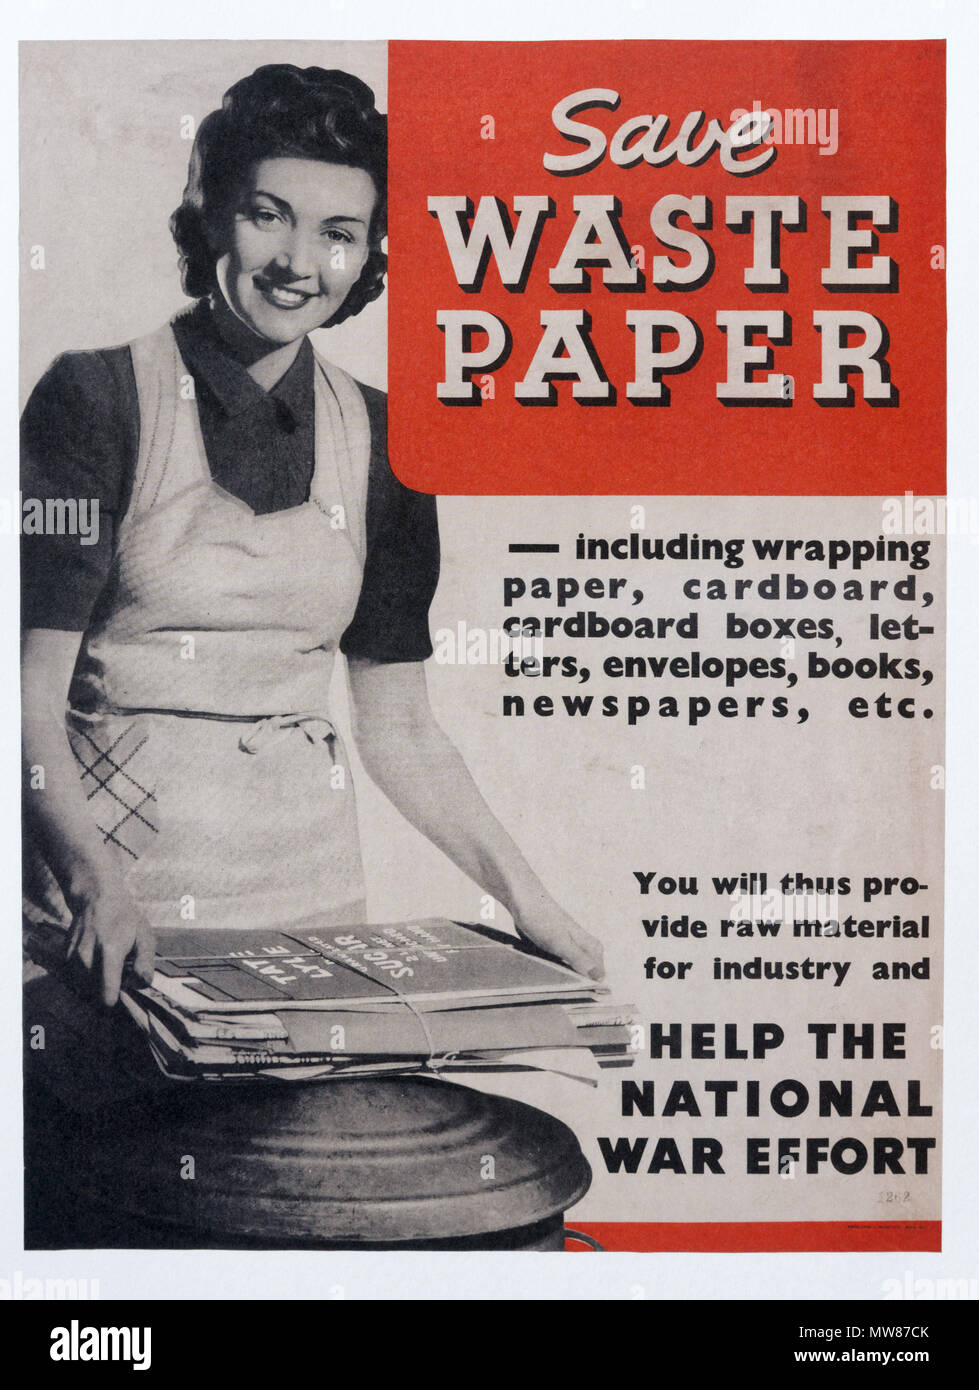 A Second World War poster promoting the salvage, and recycling of waste paper  -  Save Waste Paper - Stock Image